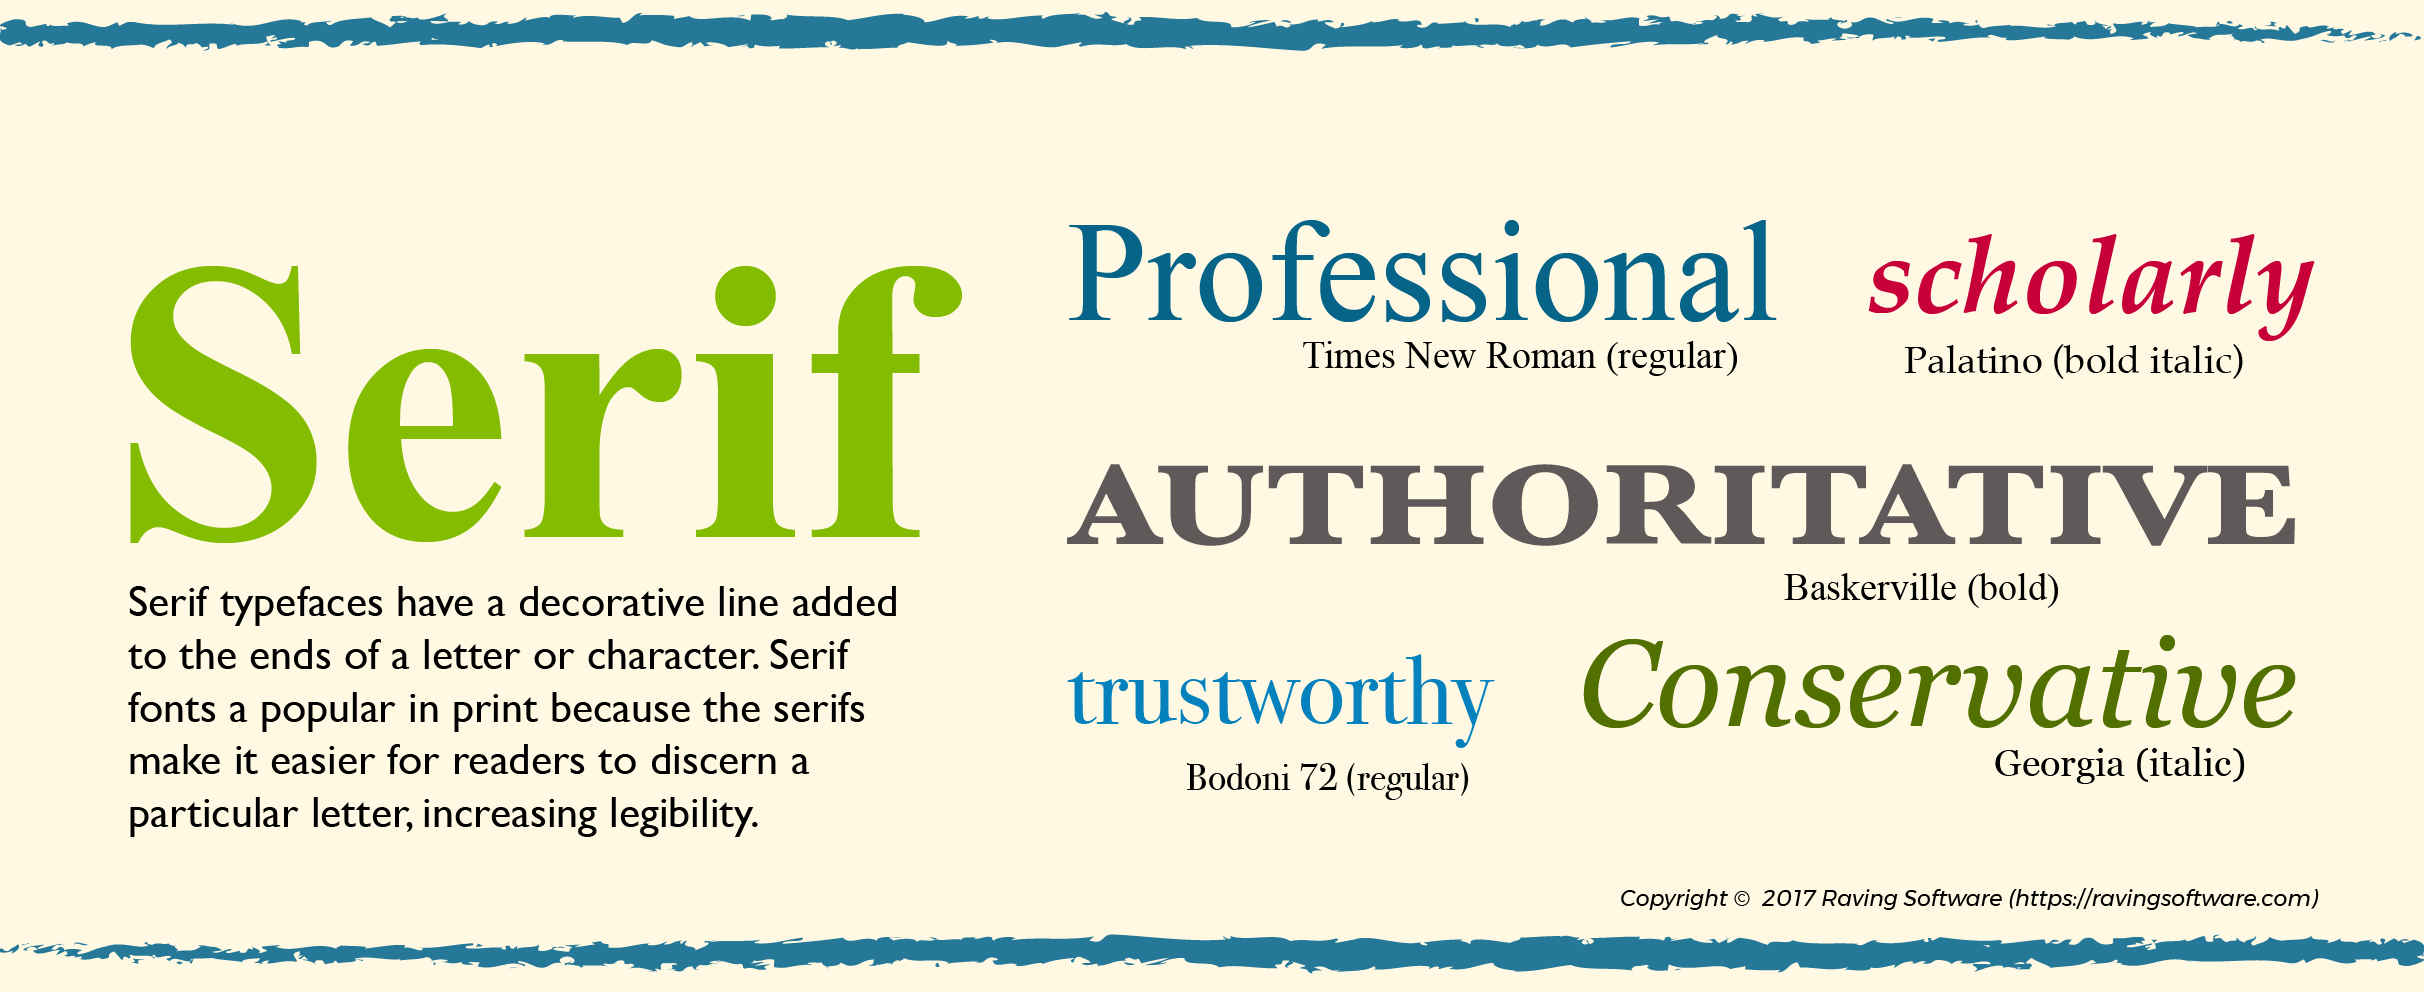 Examples of serif typefaces and connotations